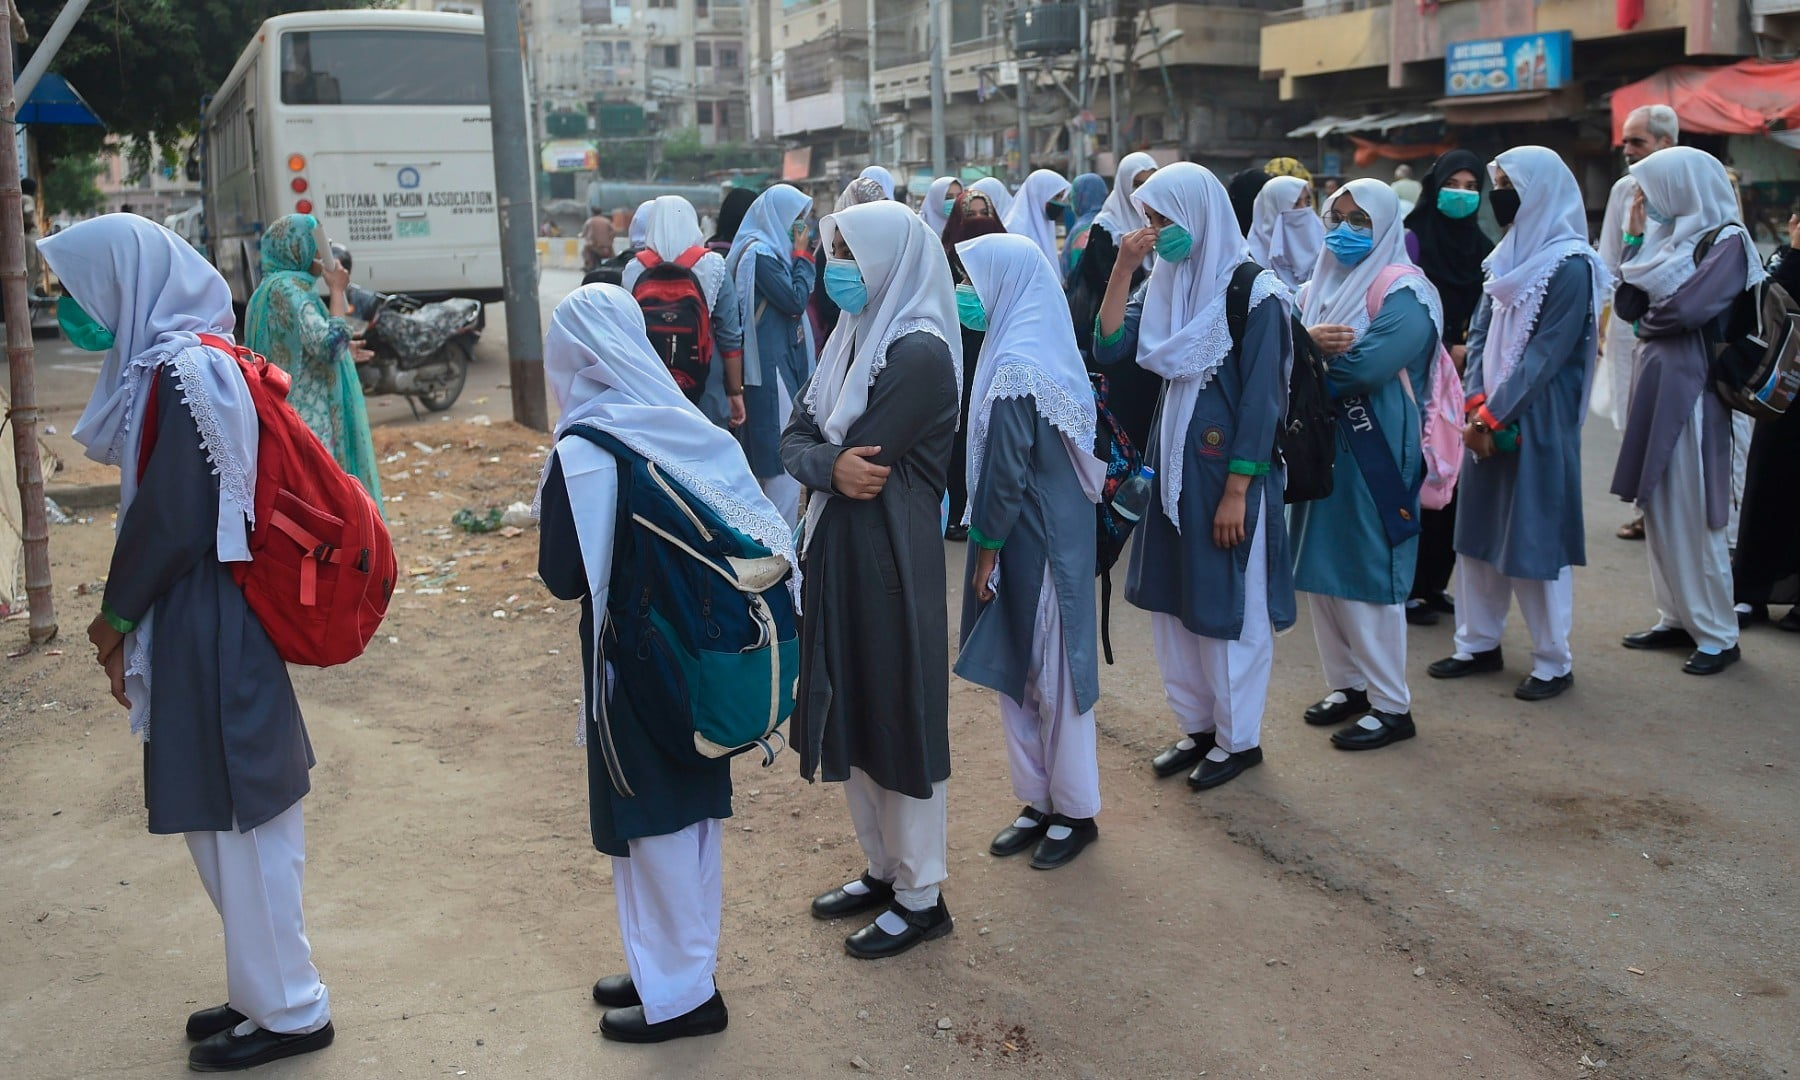 Students wearing face masks stand in queue as they wait to enter their school in Karachi on September 15. — AFP